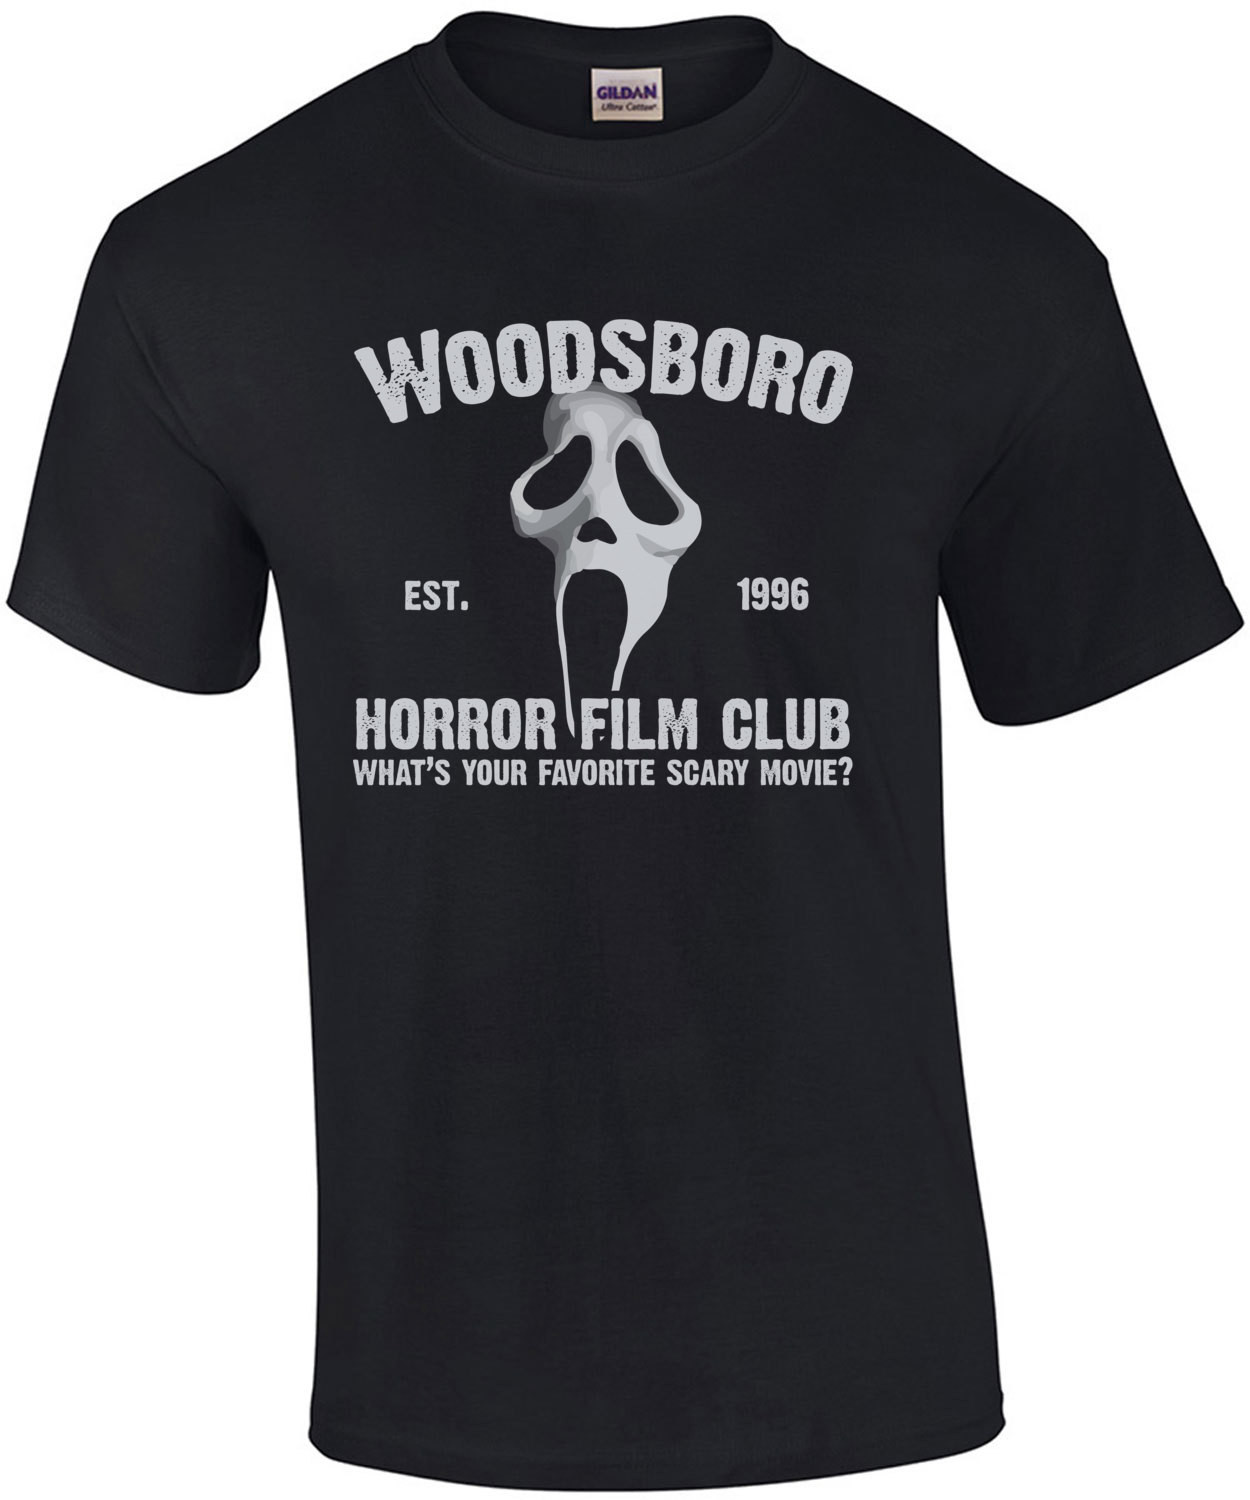 Woodsboro Horror Film Club - Scream T-Shirt